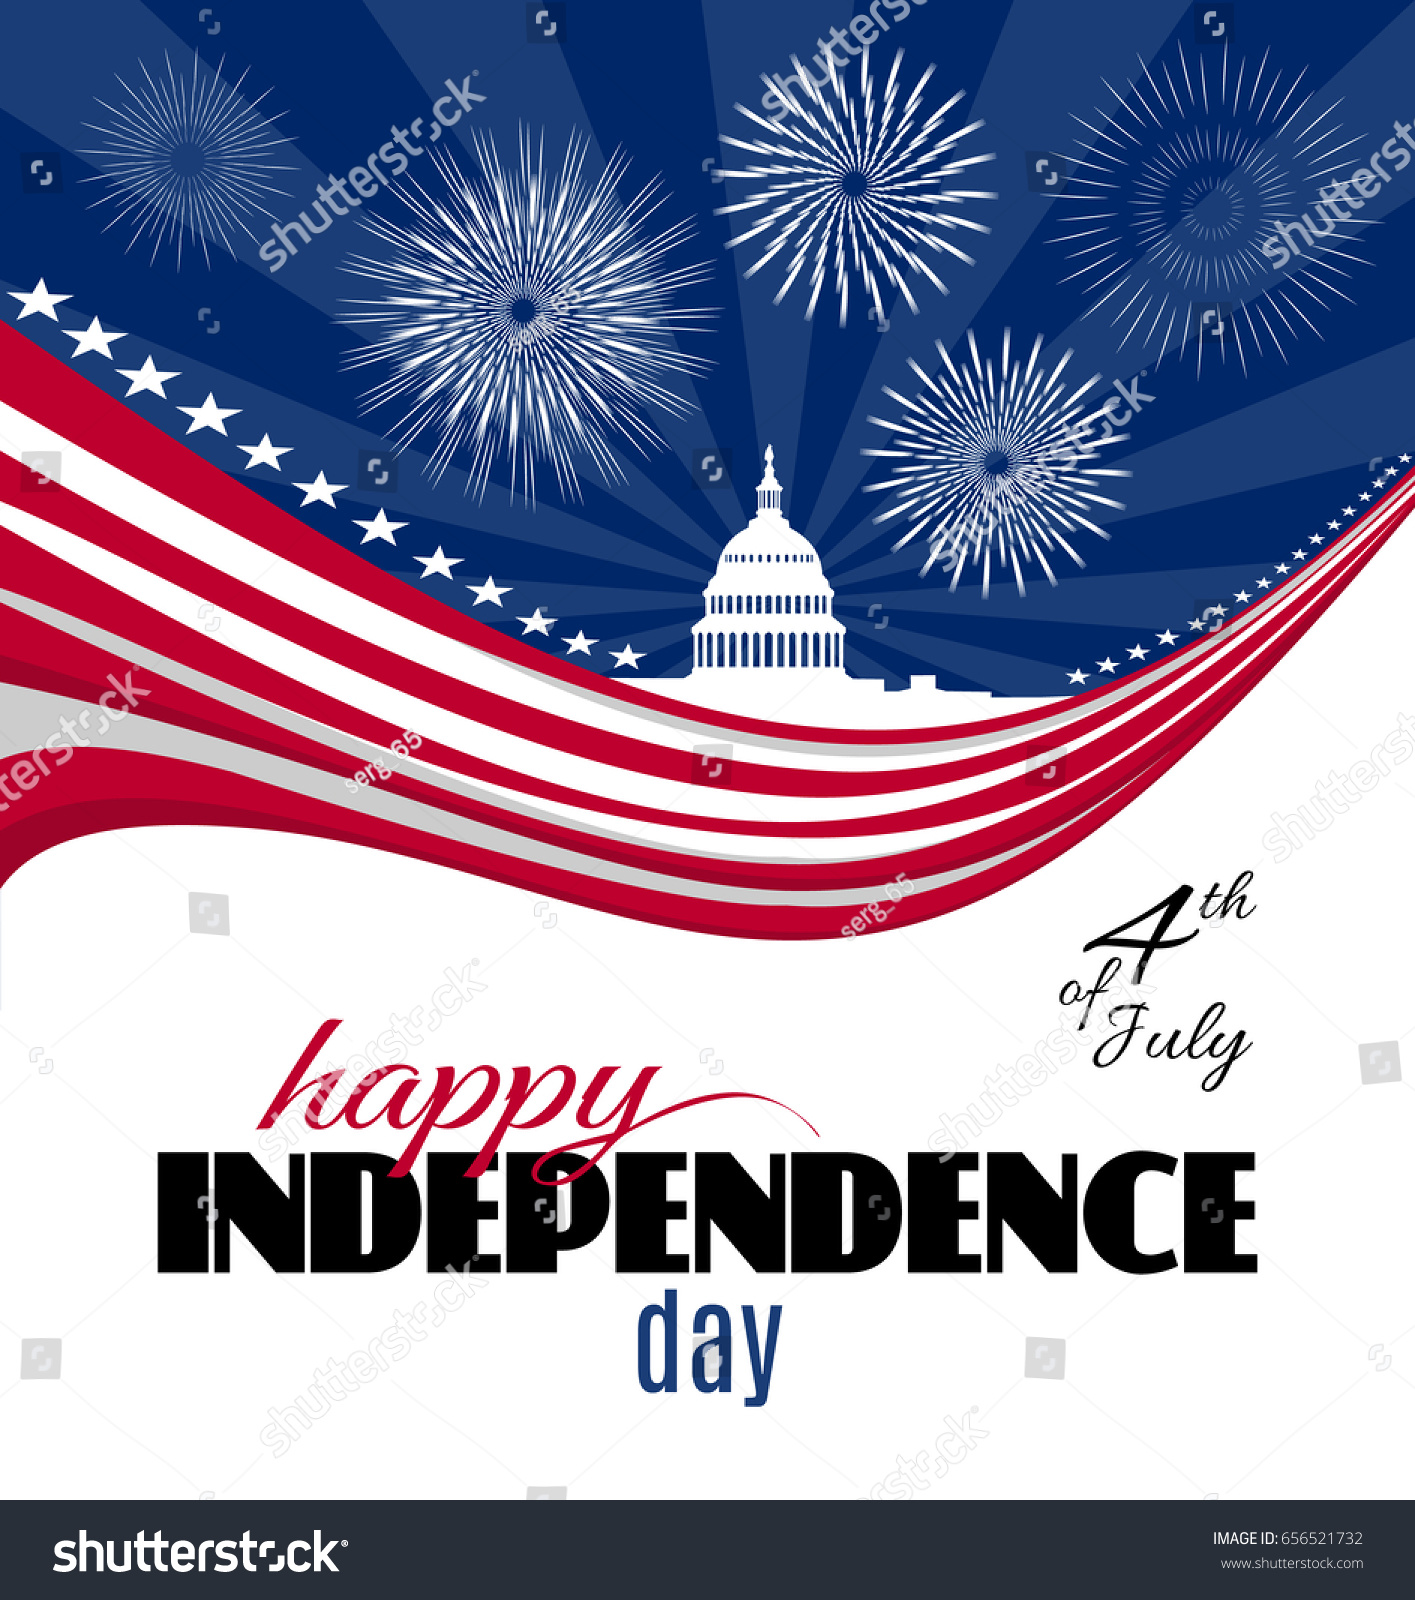 Happy Independence Day Greeting Card Poster Stock Vector (Royalty ...